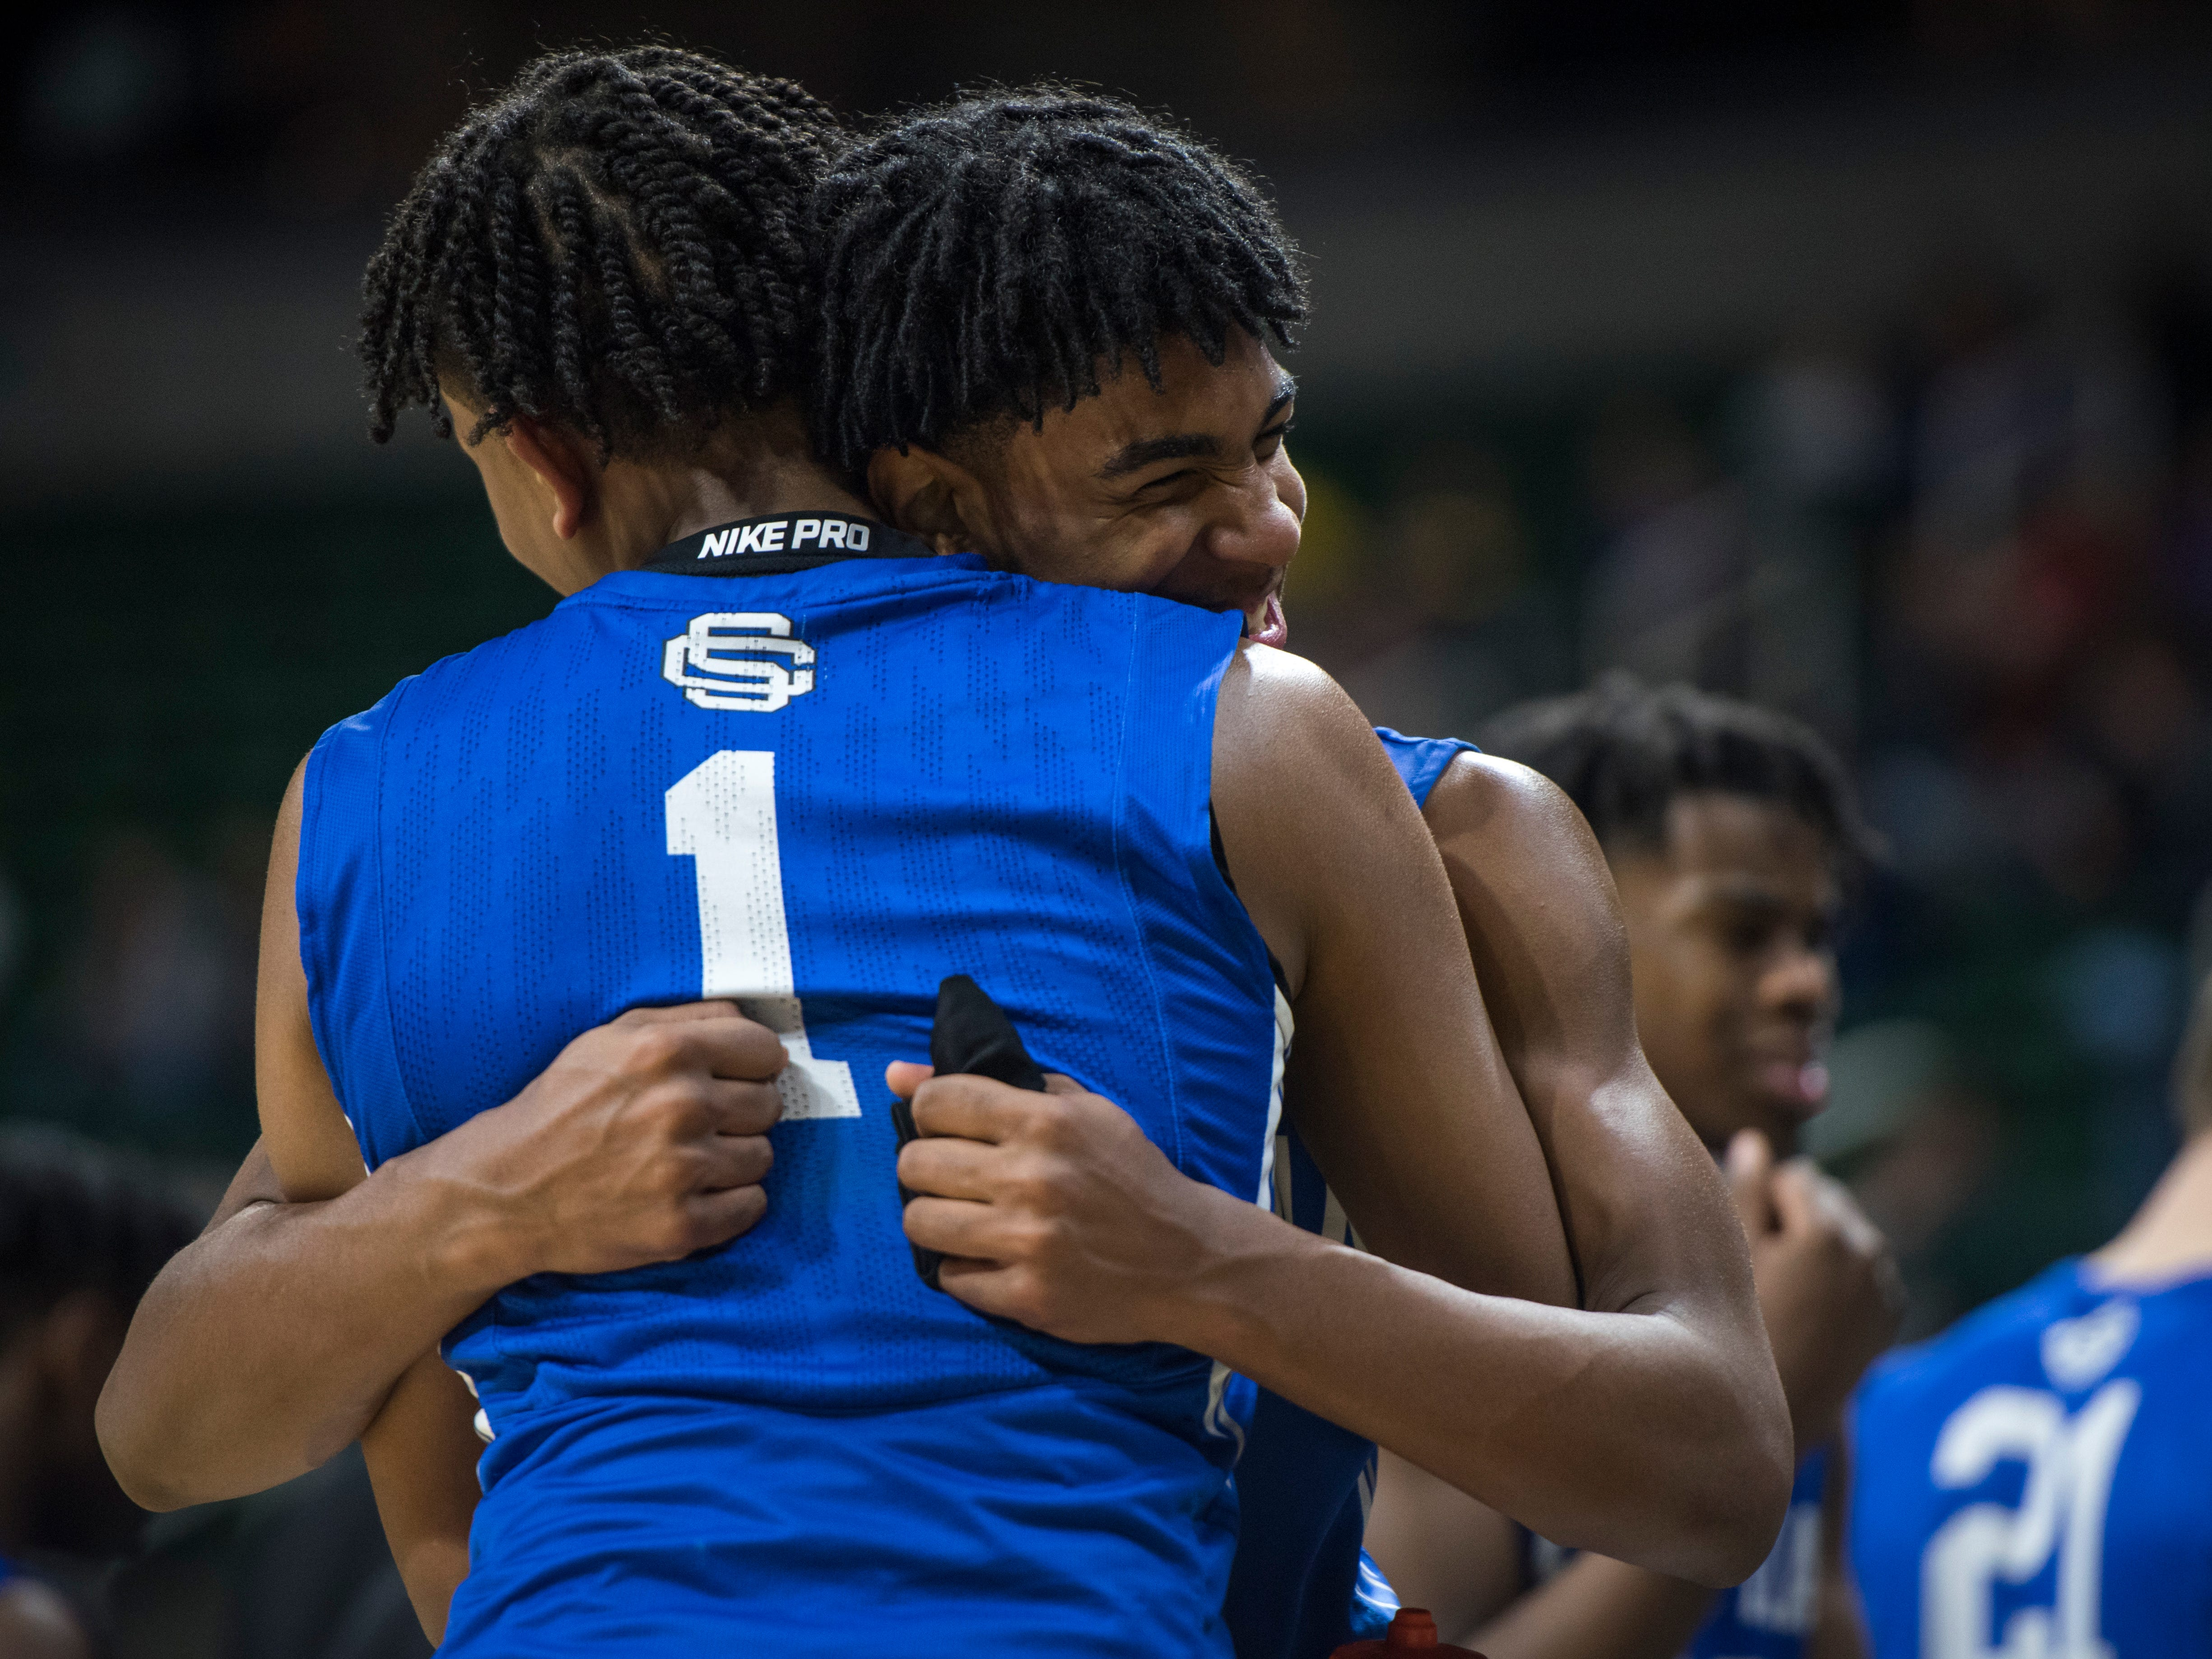 Southfield Christian's Tarron Carter, left, embraces Southfield Christian's Malcolm King in the second half.